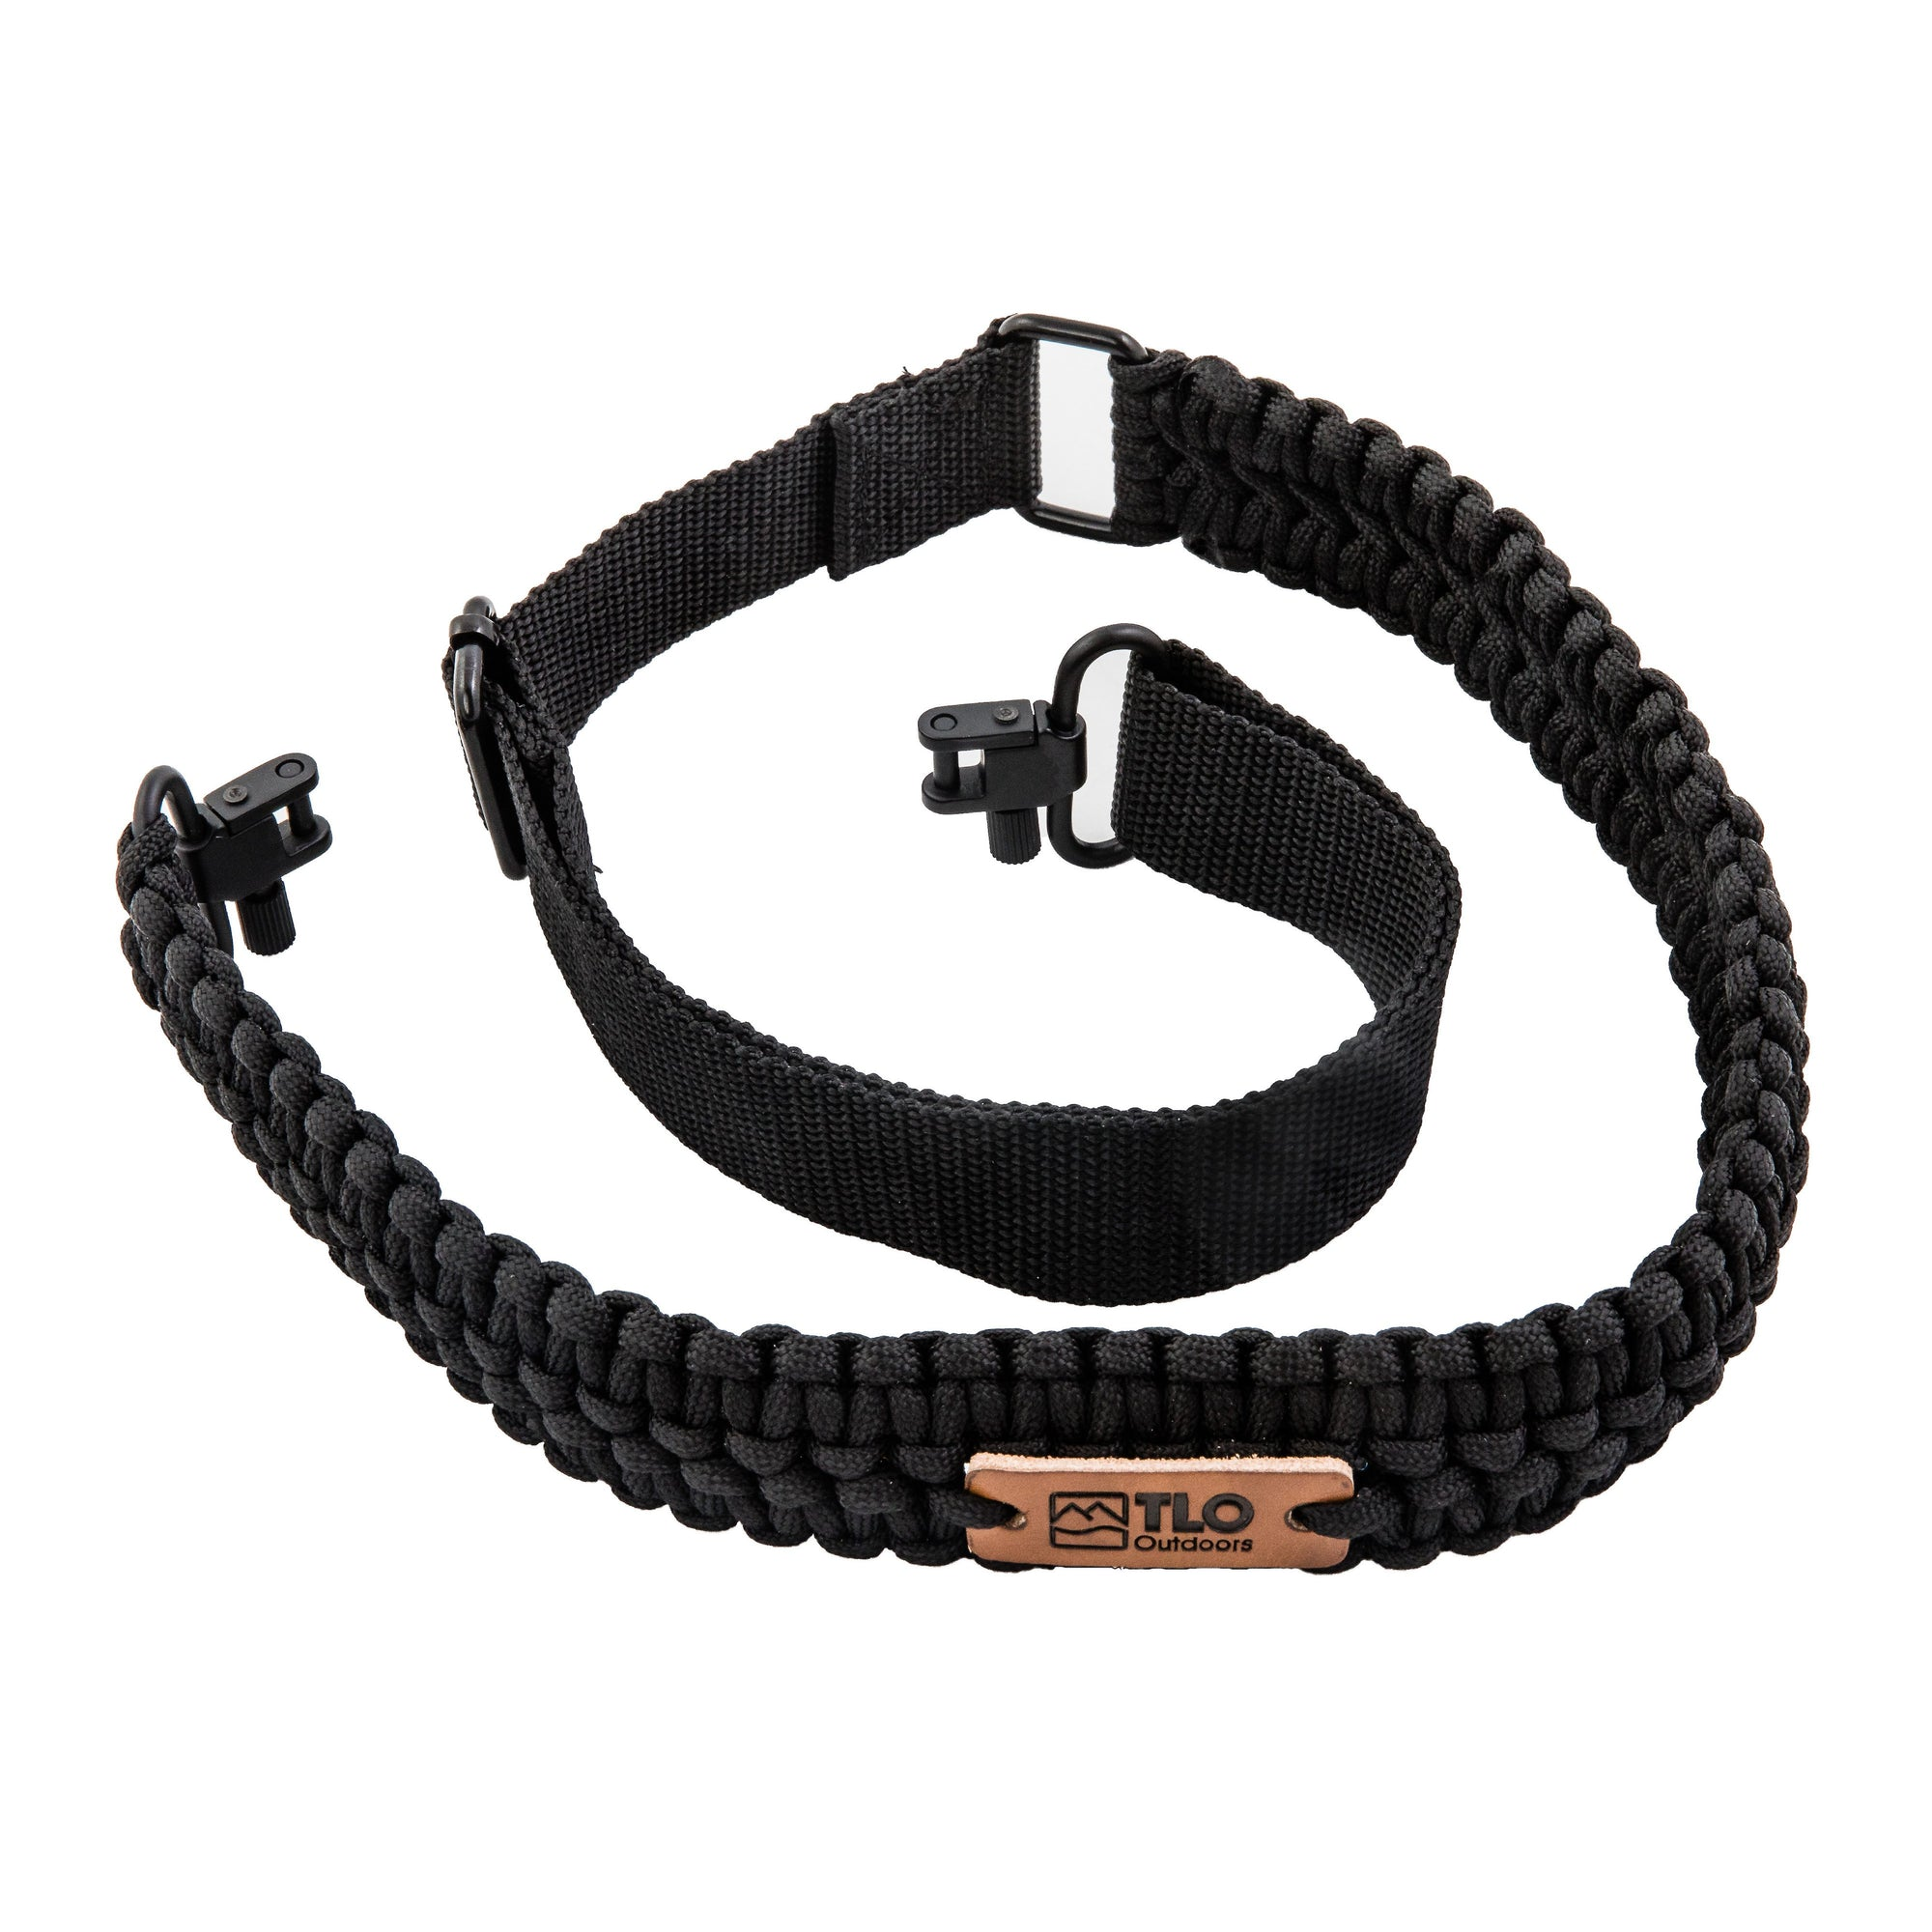 TLO Outdoors Adjustable 2-Point Paracord Tactical Gun Sling for Rifle, Shotgun, and Crossbows - TLO Outdoors